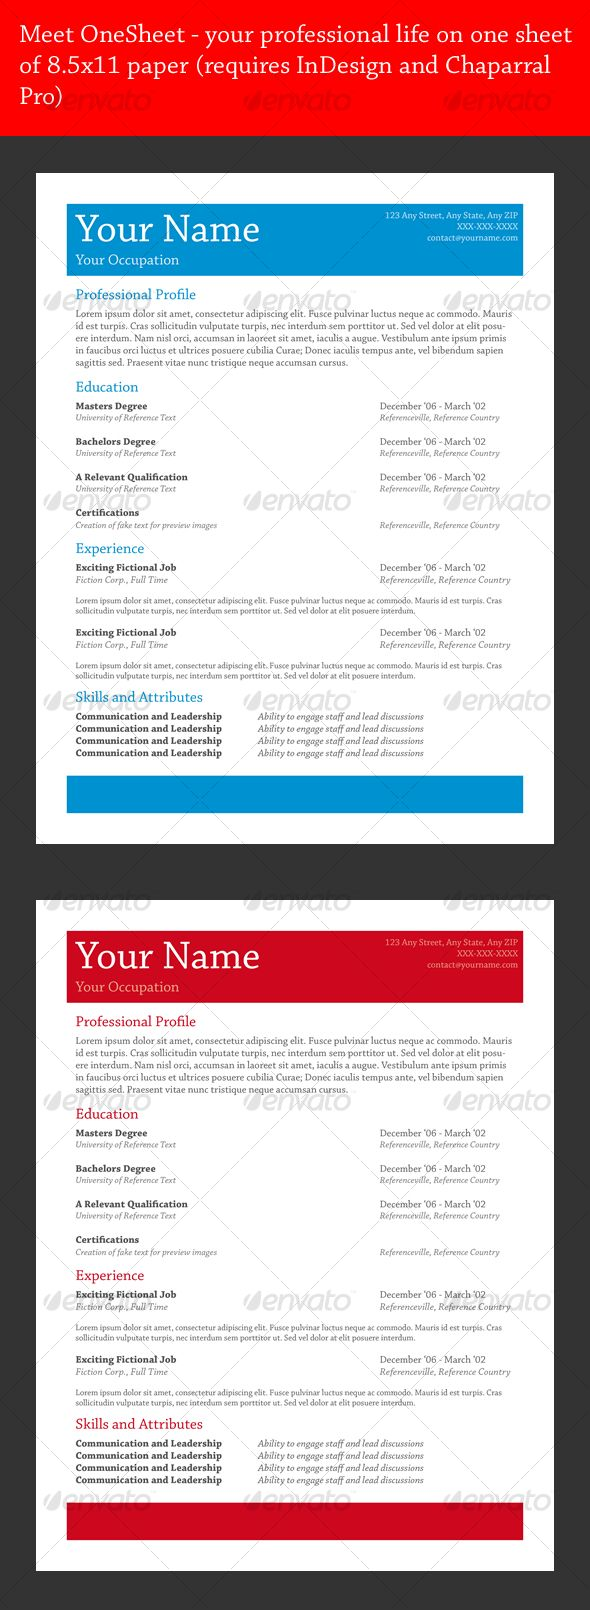 onesheet resume design two pack by markhowson simplicity is important in the ever competitive